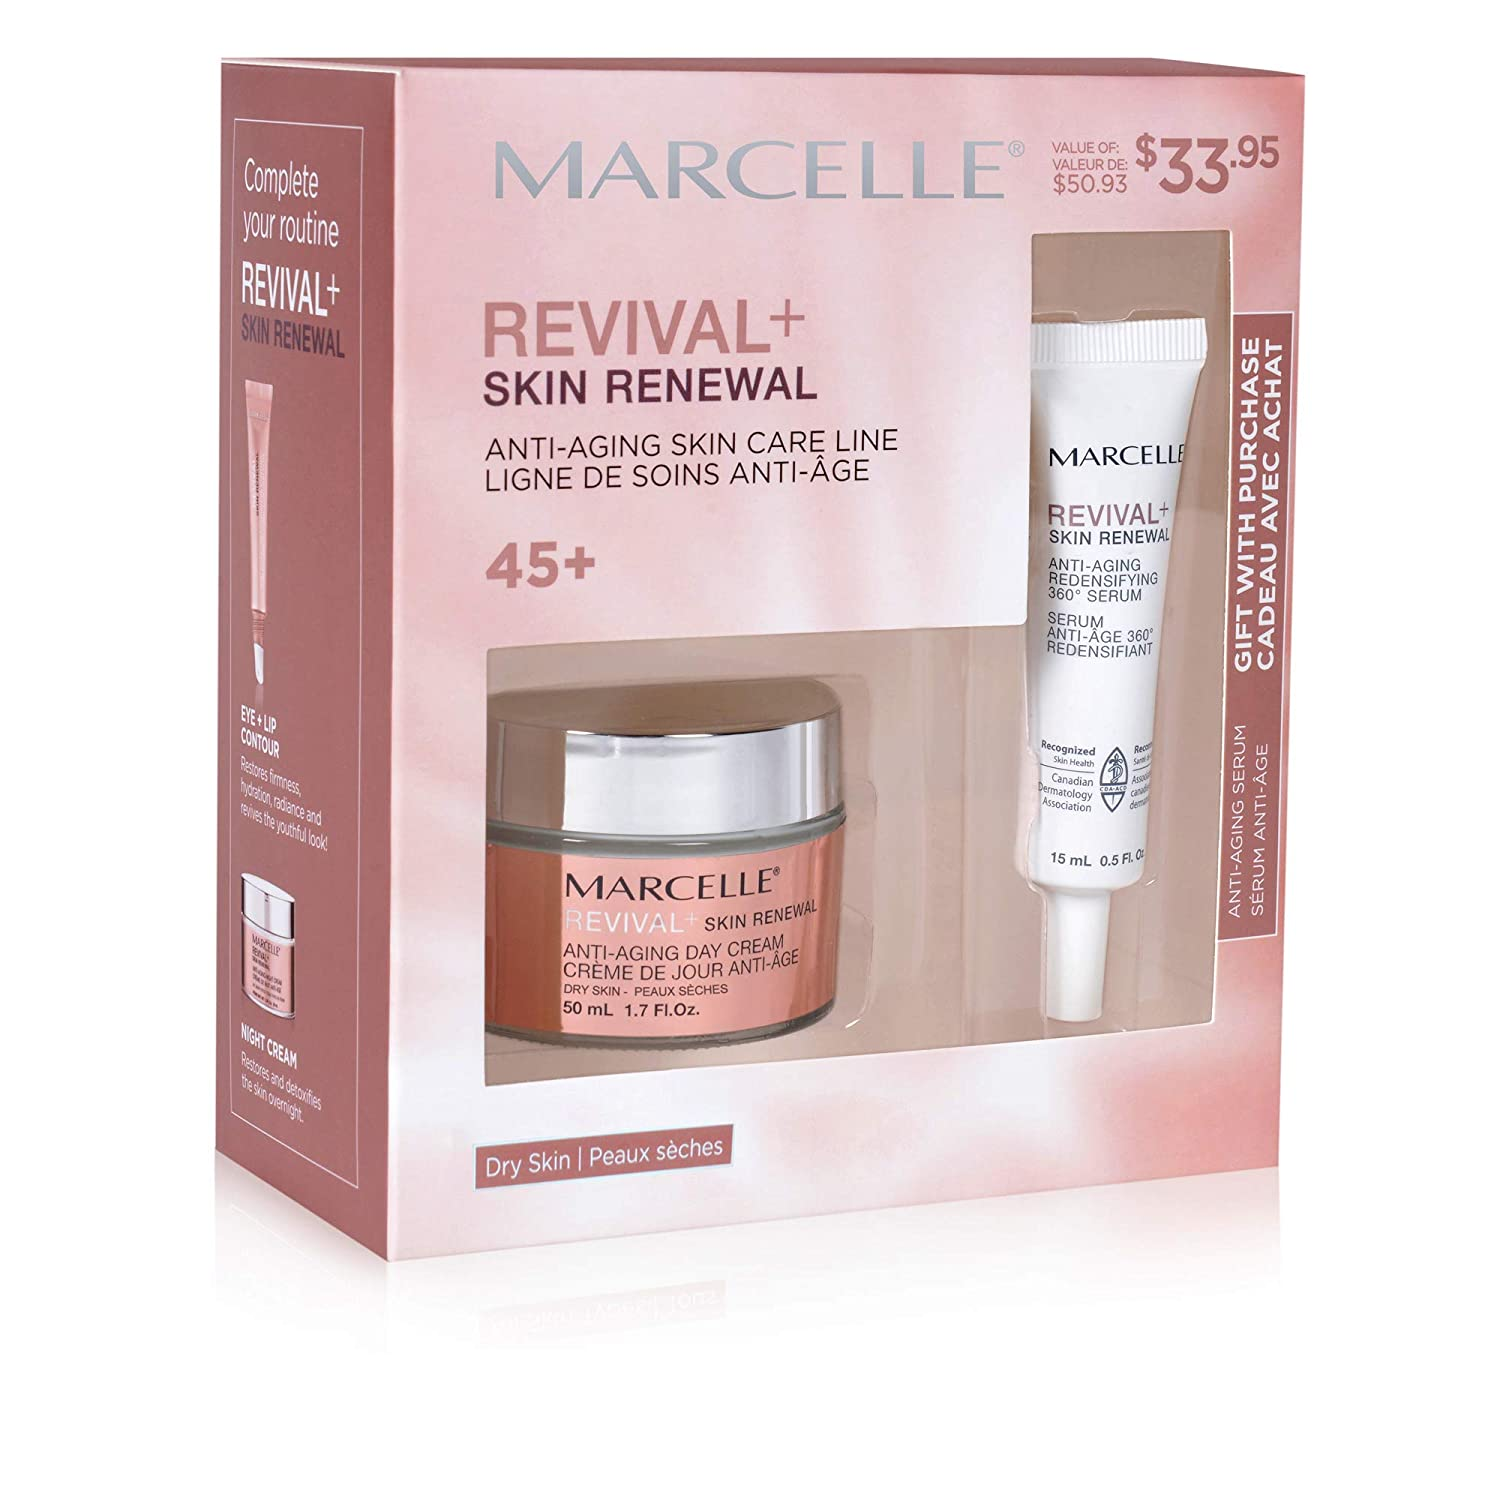 Revival+ Skin Renewal Anti-Aging Day Cream - Dry Skin + Anti-Aging Redensifying 360° Serum Gift Set Marcelle